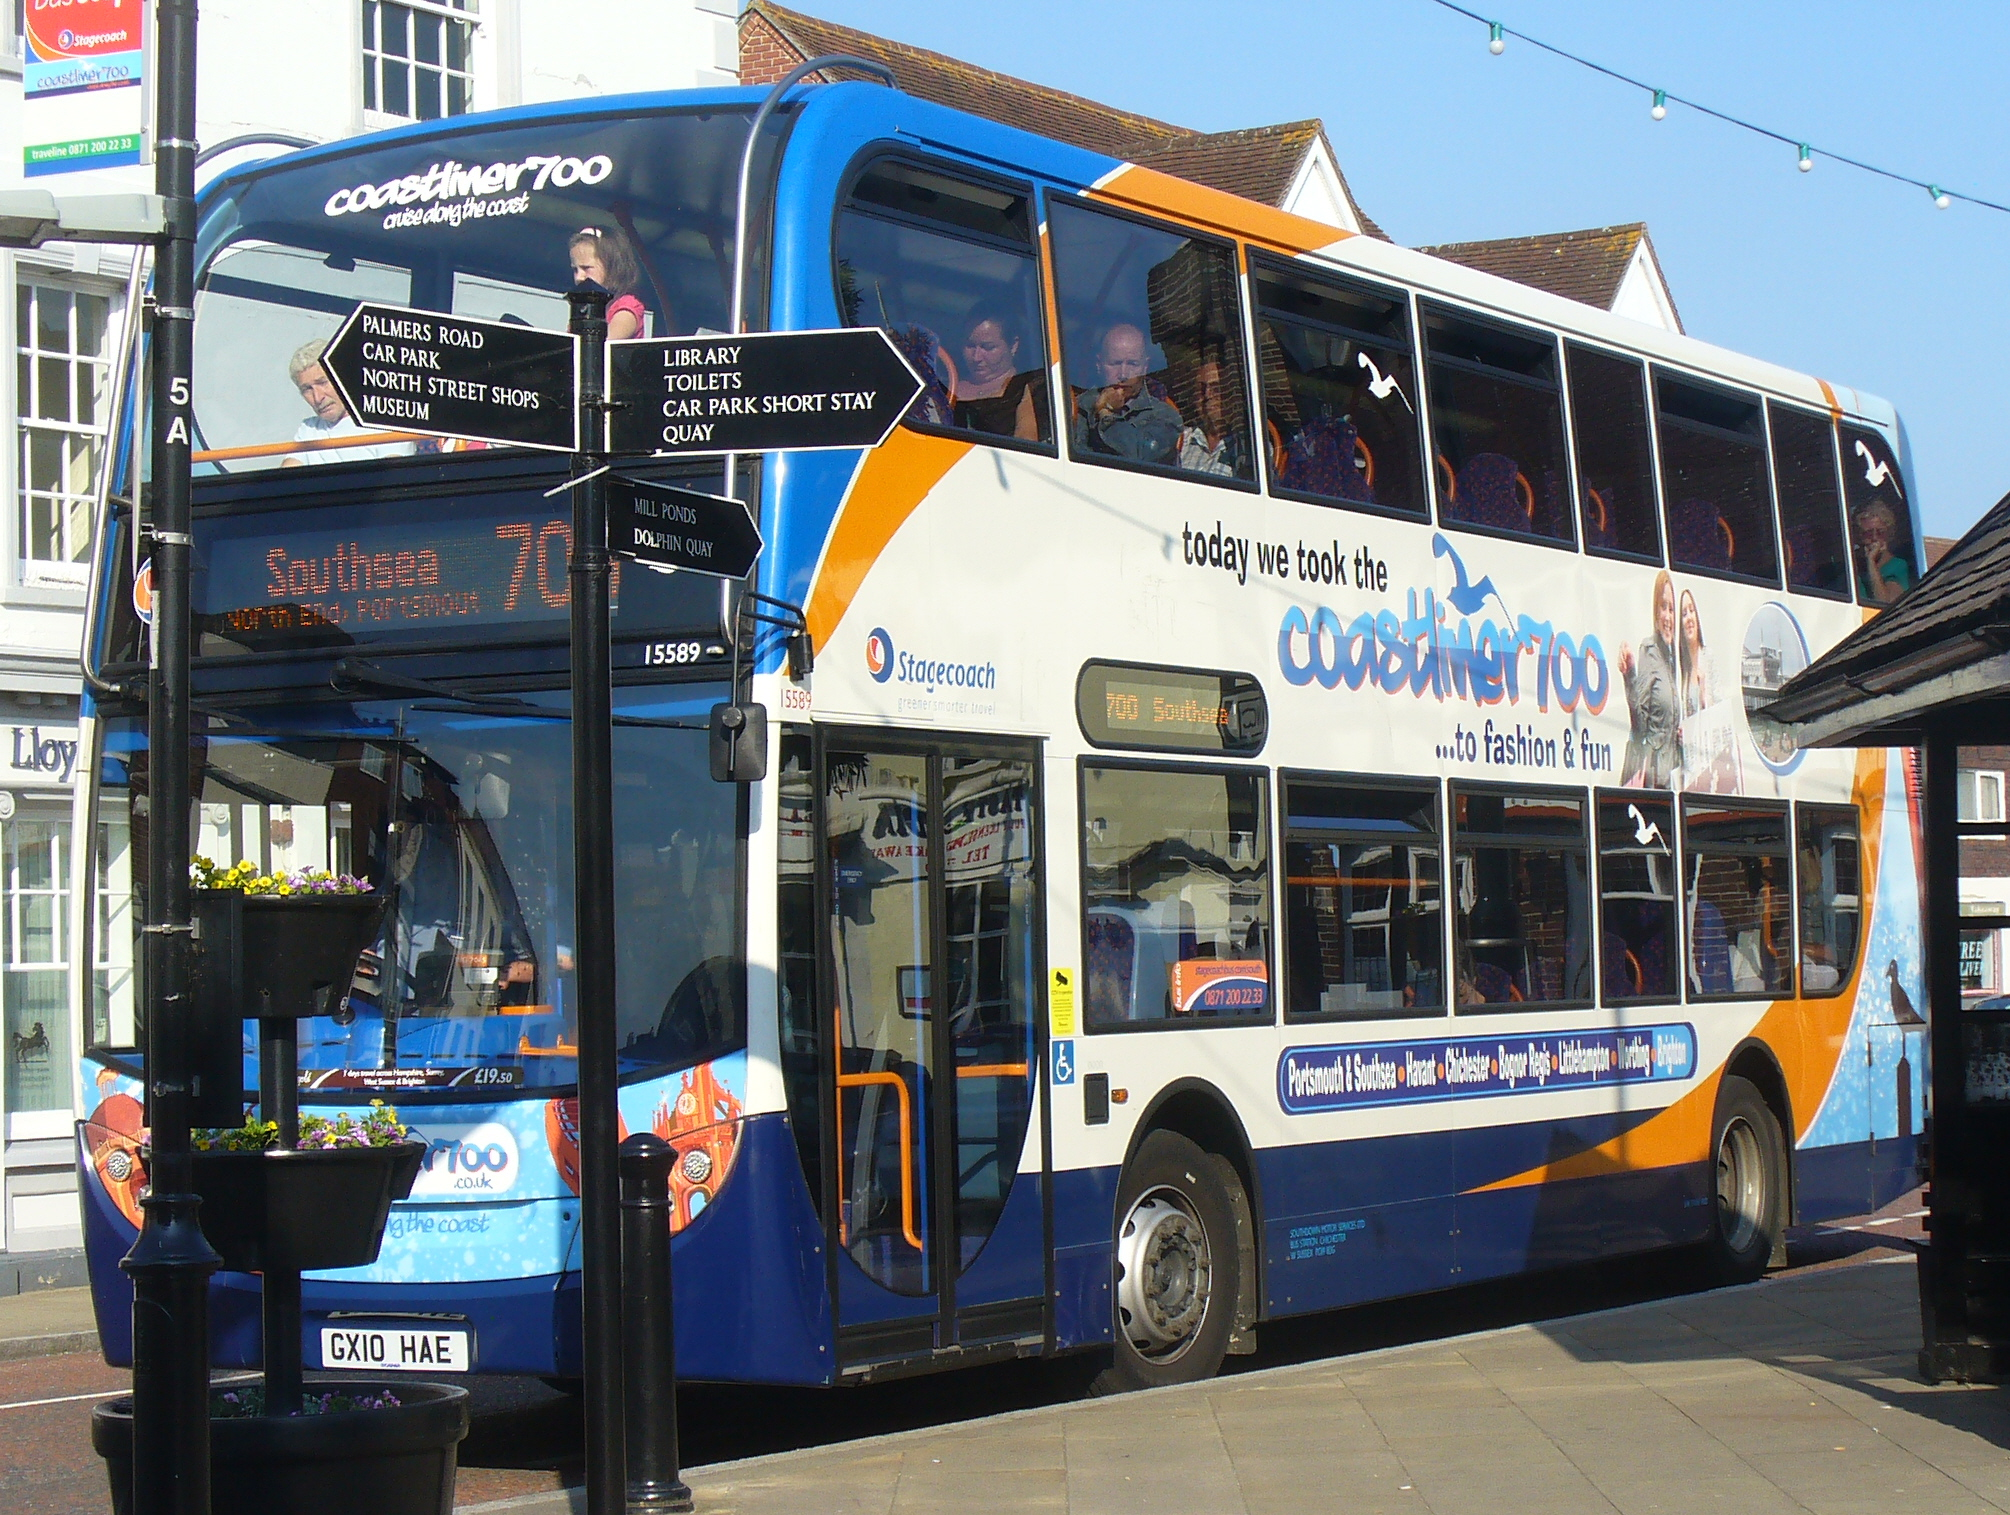 File stagecoach in the south downs bus 15589 gx10 hae for Time table bus 99